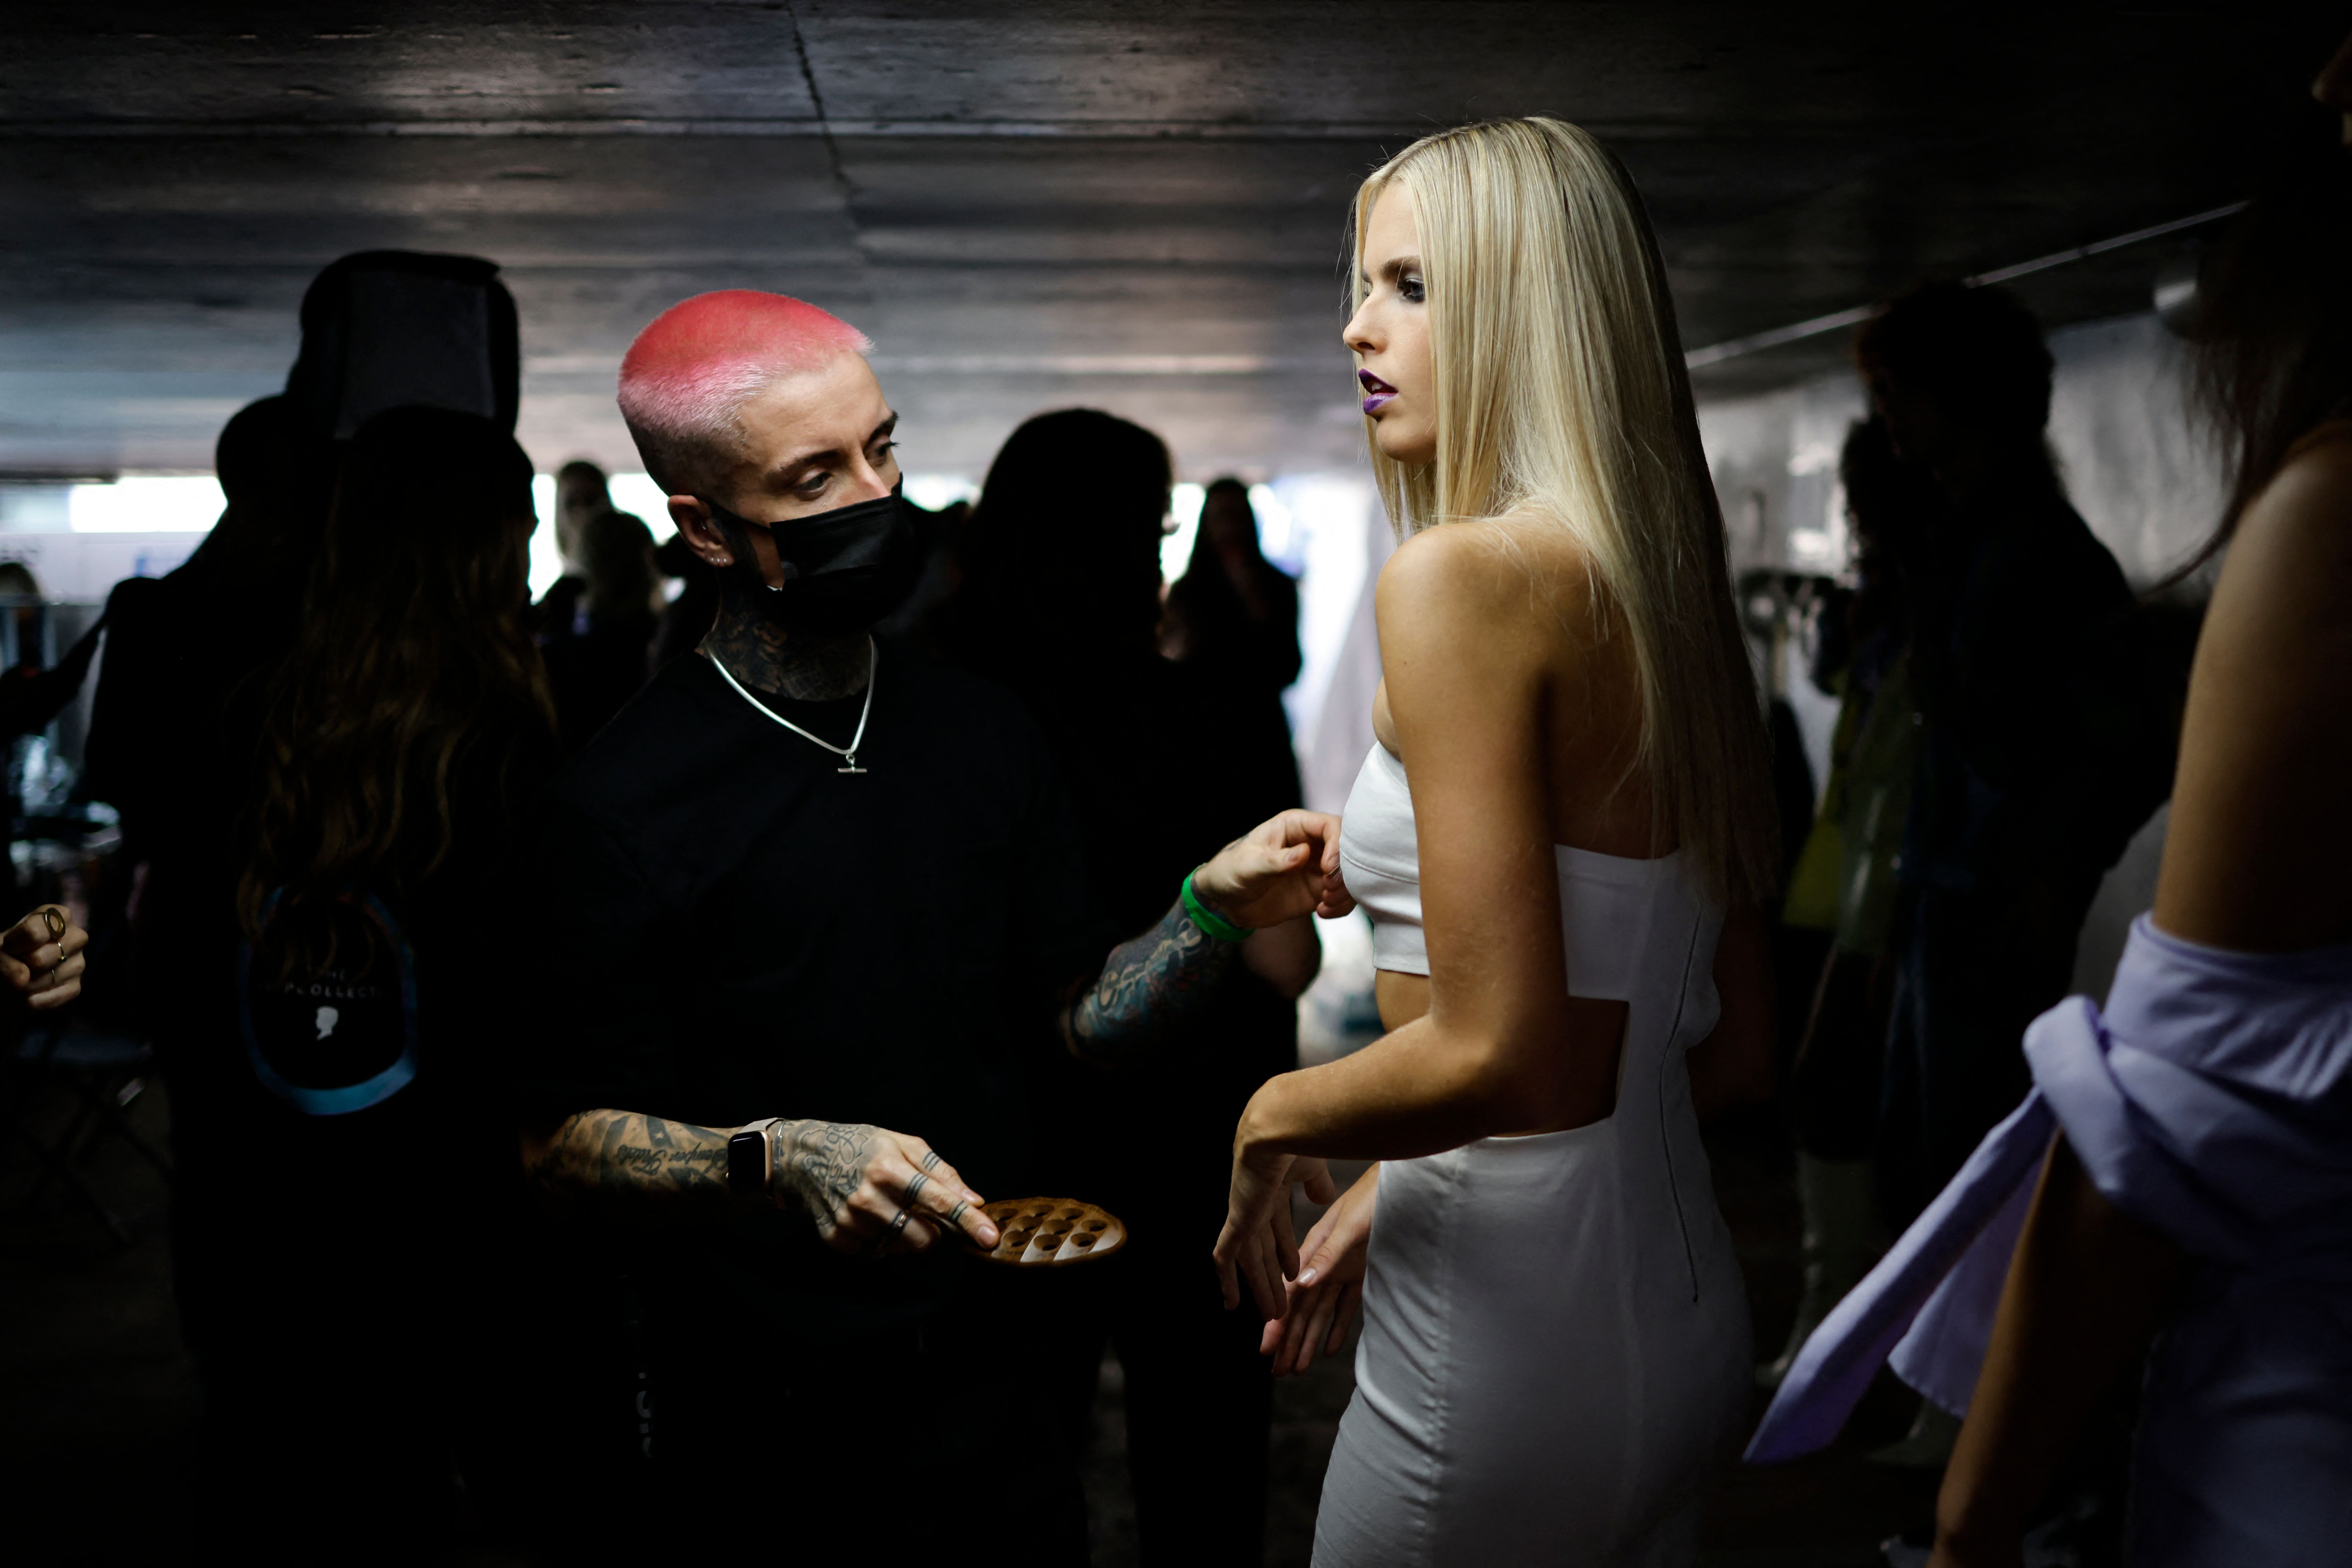 <p>A model is prepared backstage ahead of the catwalk show from British designer Mark Fast during a catwalk show for the Spring/Summer 2022 collection on the first day of London Fashion Week in London on September 17, 2021. (Photo by Tolga Akmen / AFP) (Photo by TOLGA AKMEN/AFP via Getty Images)</p>